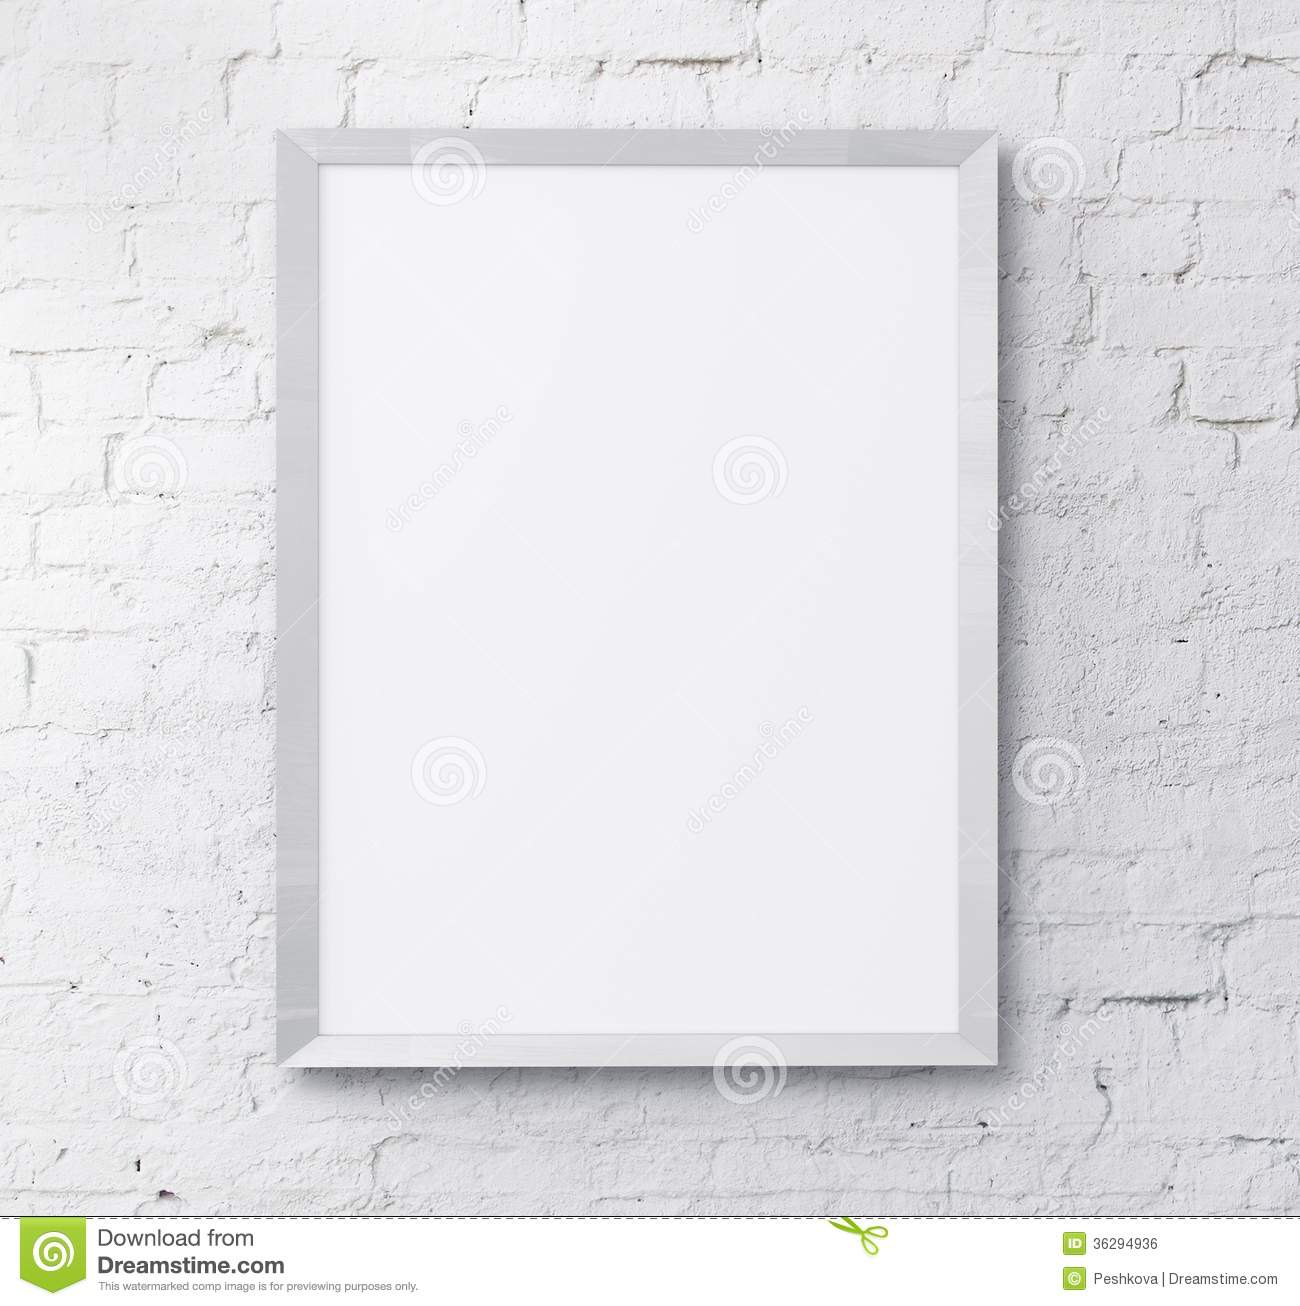 White Frame Royalty Free Stock Image - Image: 36294936